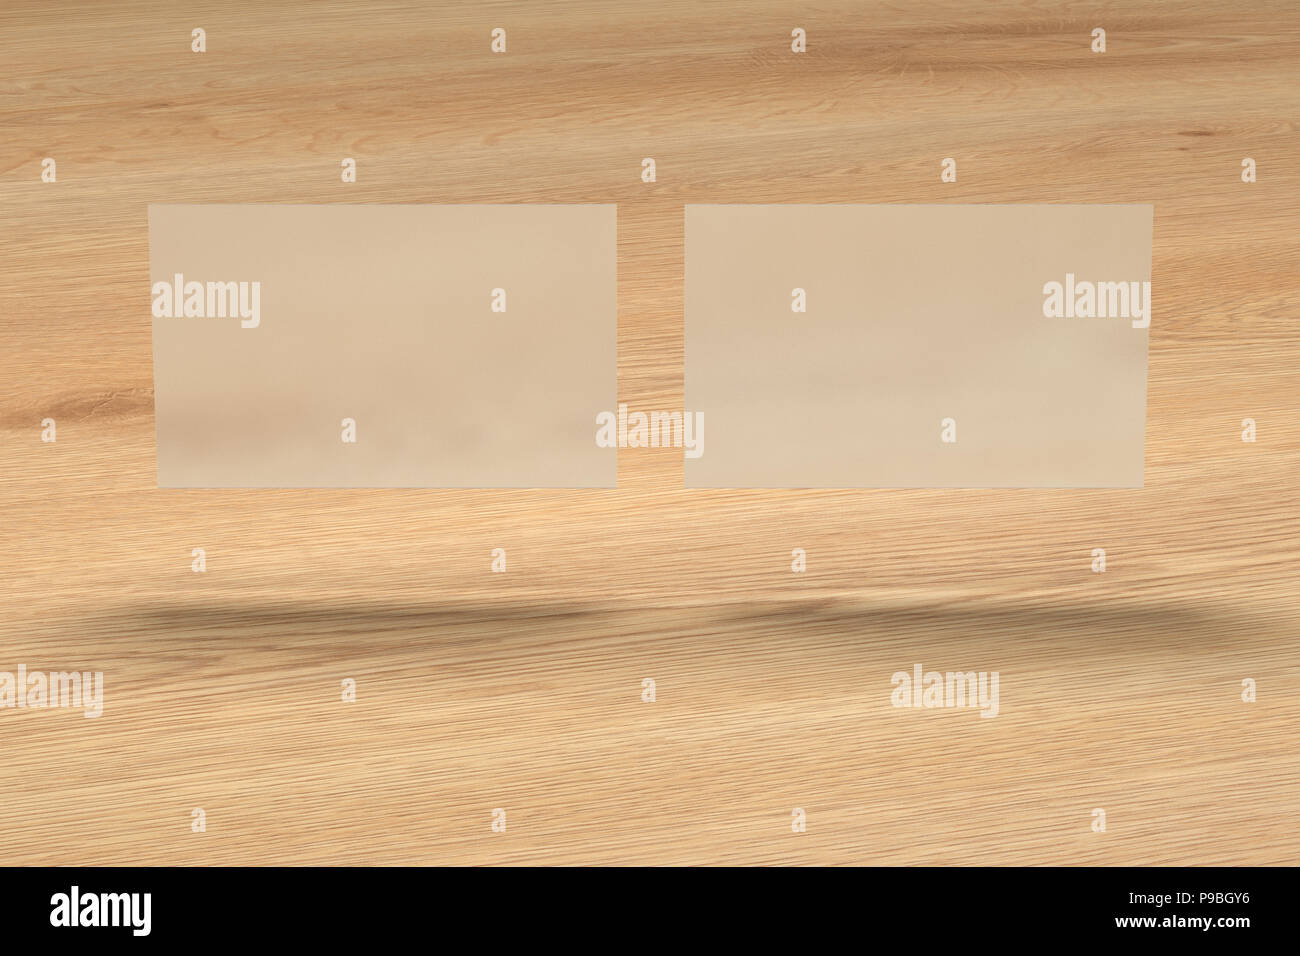 Blank Transparent Business Cards Above Wooden Background 3d Render